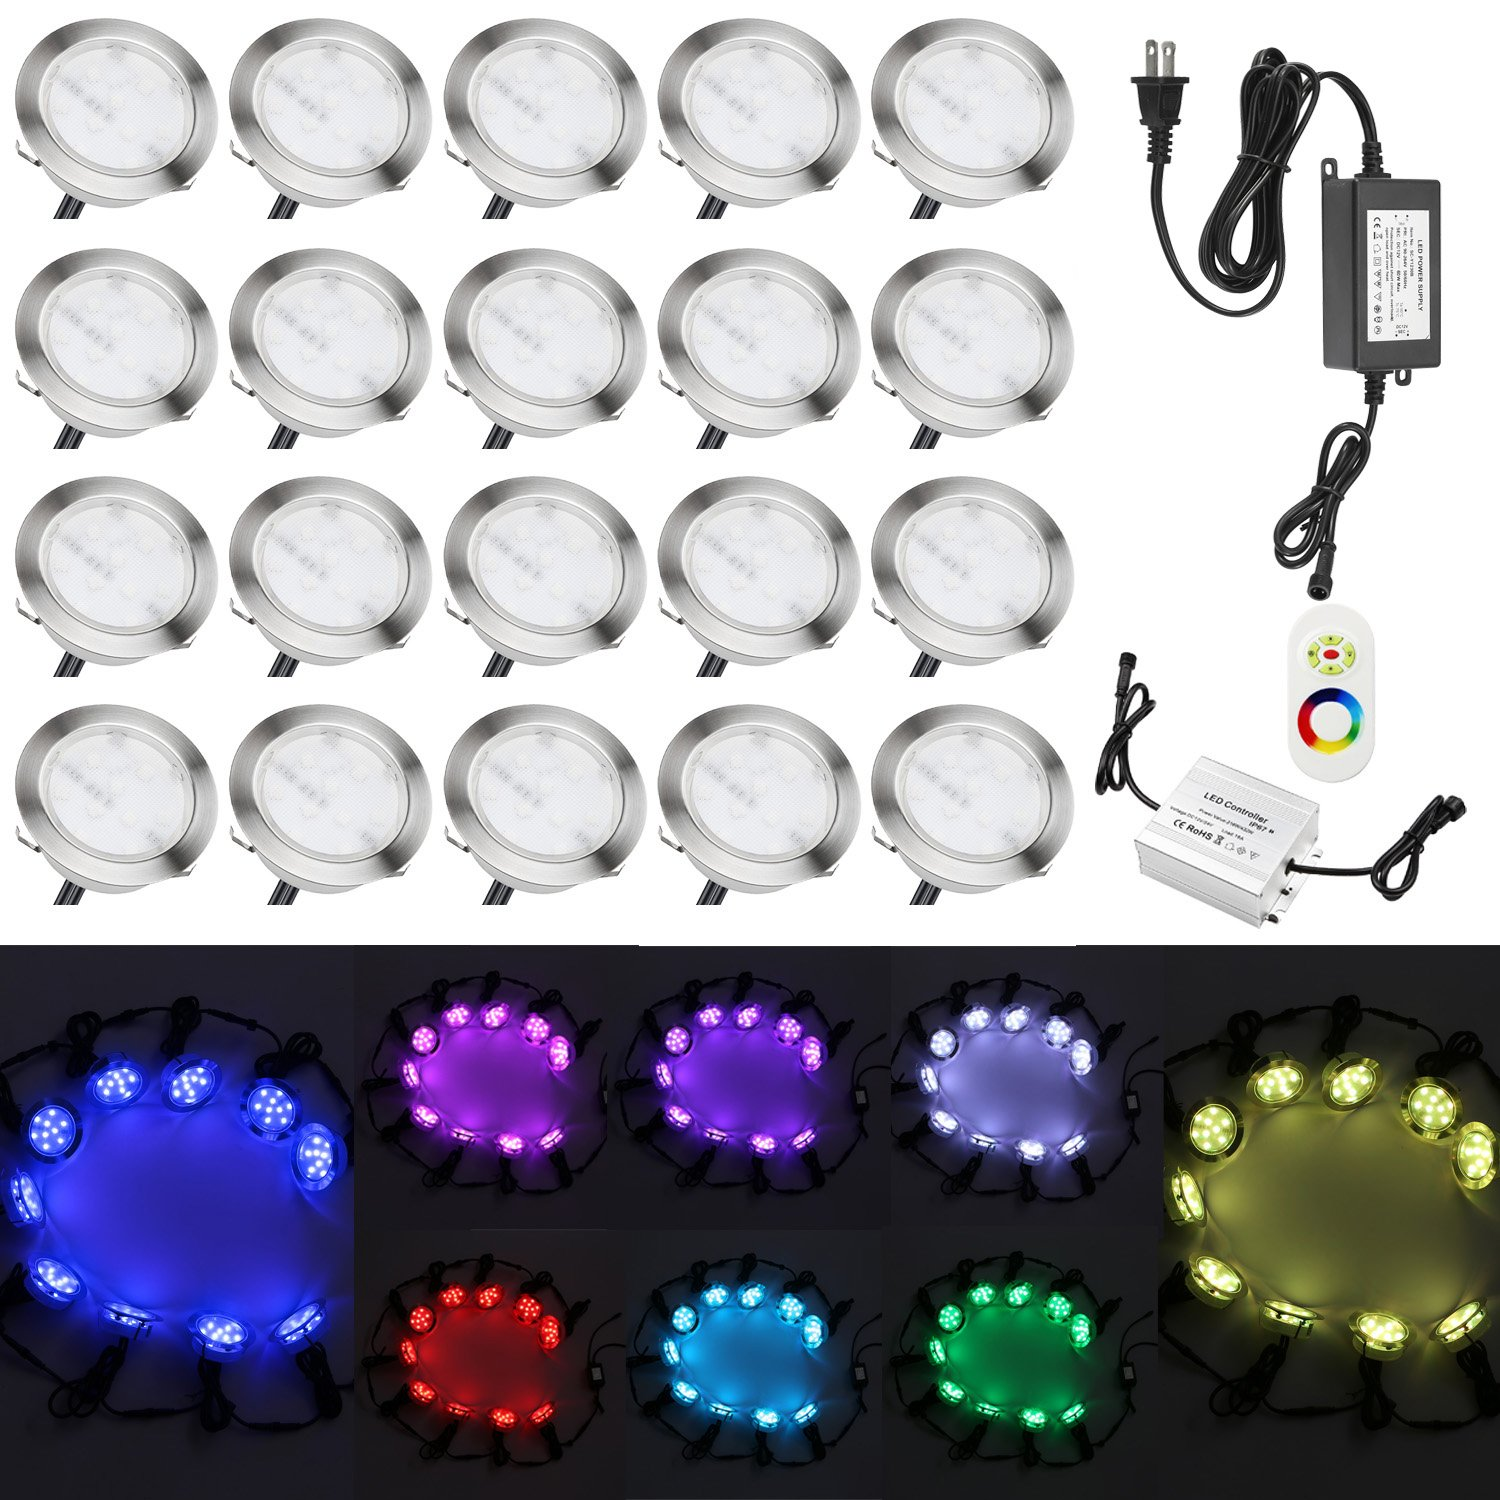 20x QACA Low Voltage Outdoor Path Lights Kit for Garden Patio Recessed Underground Step Stairs LED Lamps DC 12V Waterproof IP67 (RGB)